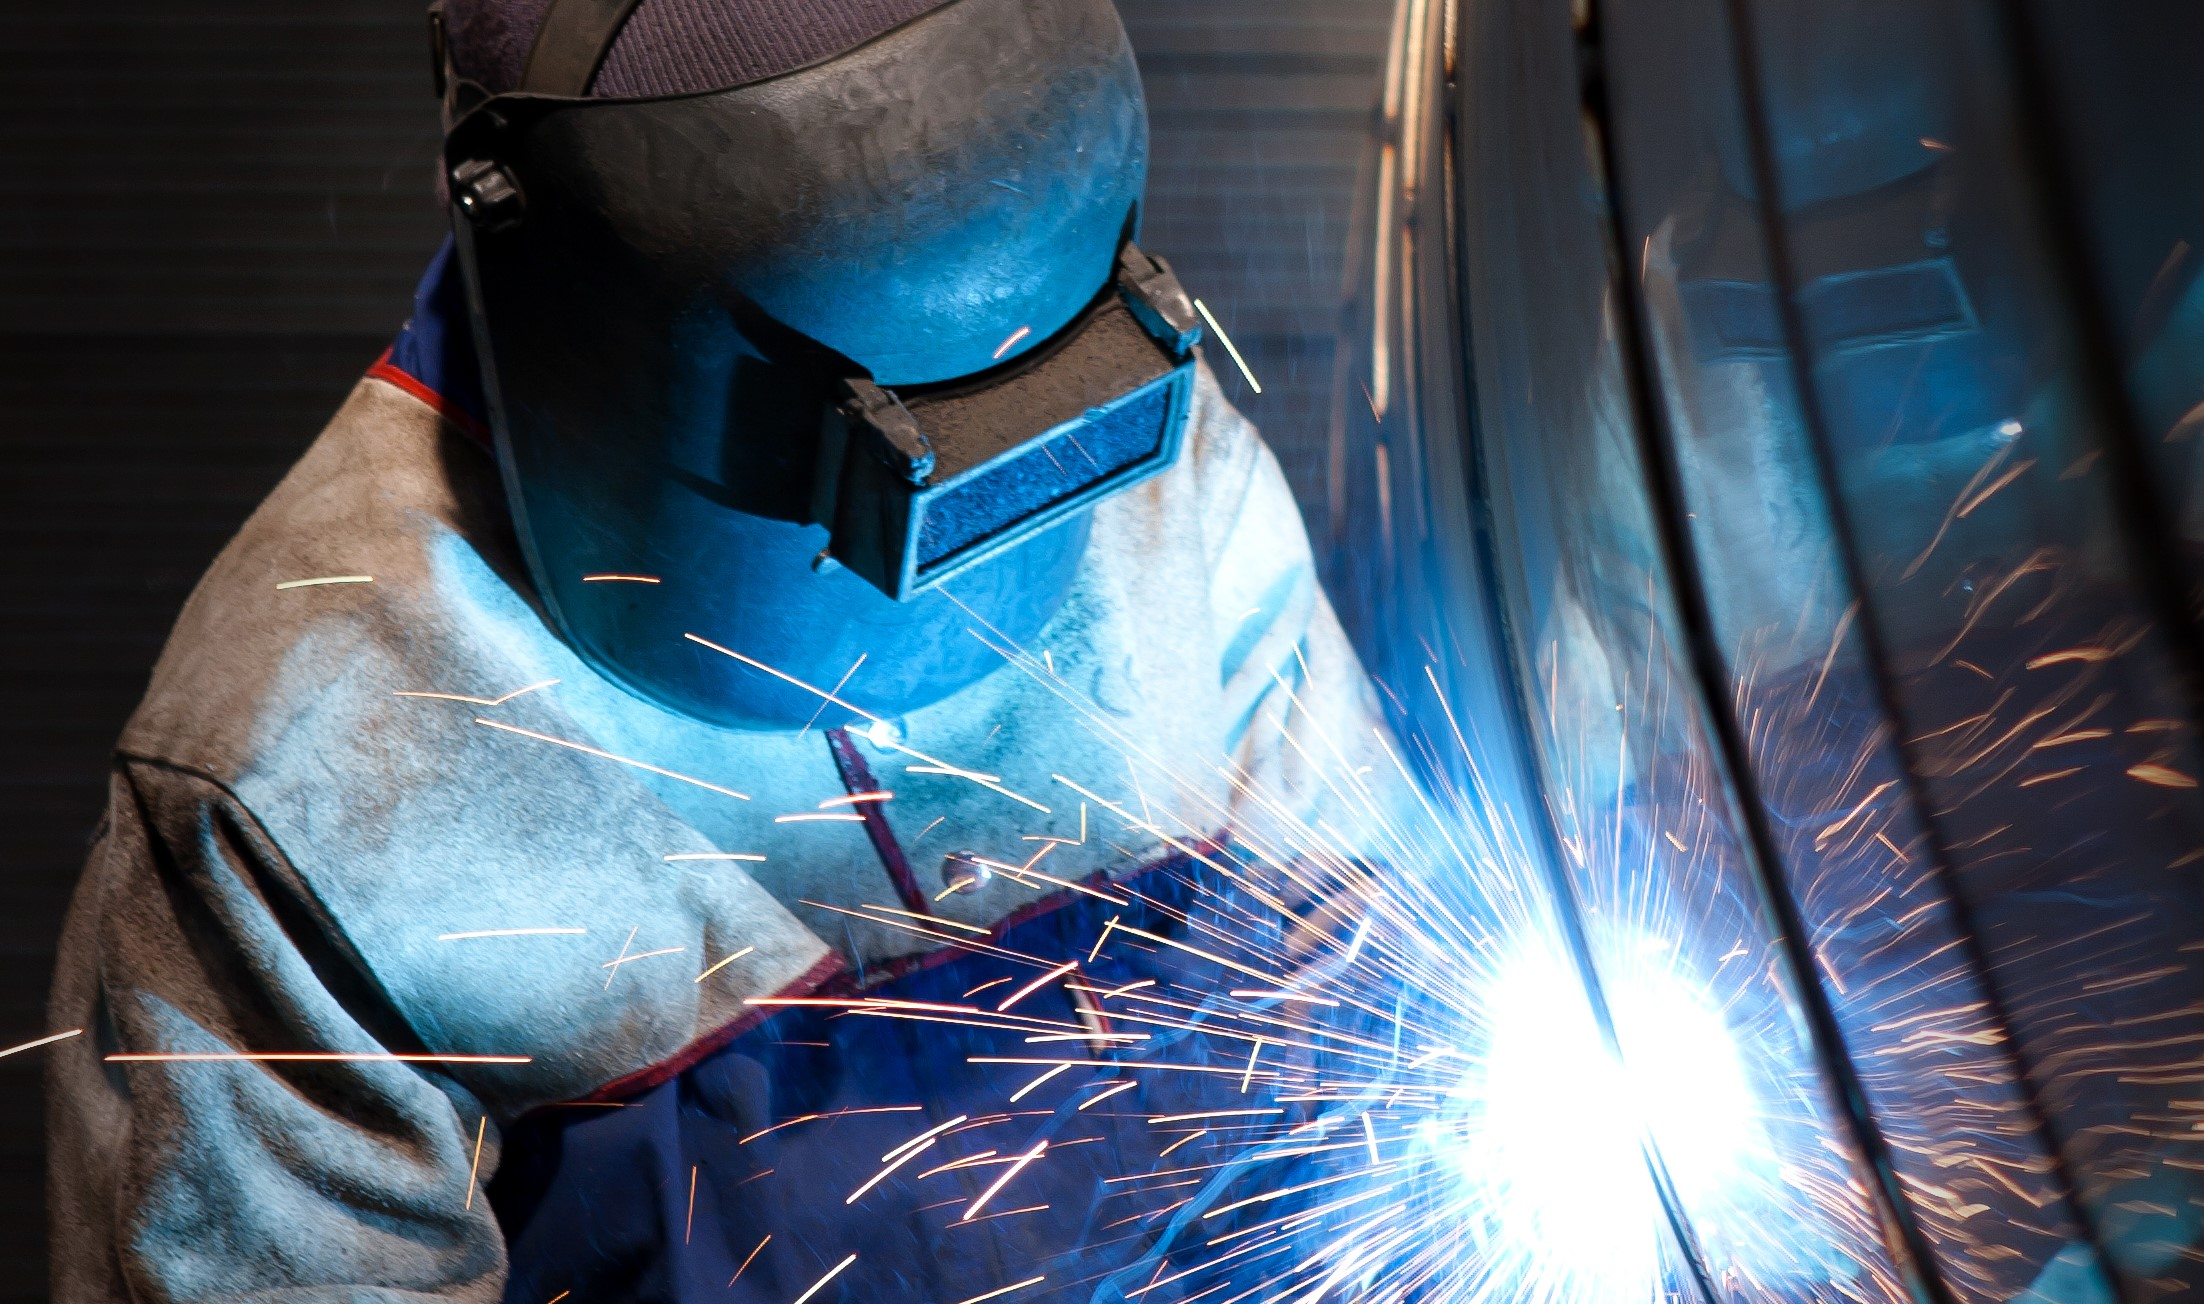 Welding and Hot Work Safety